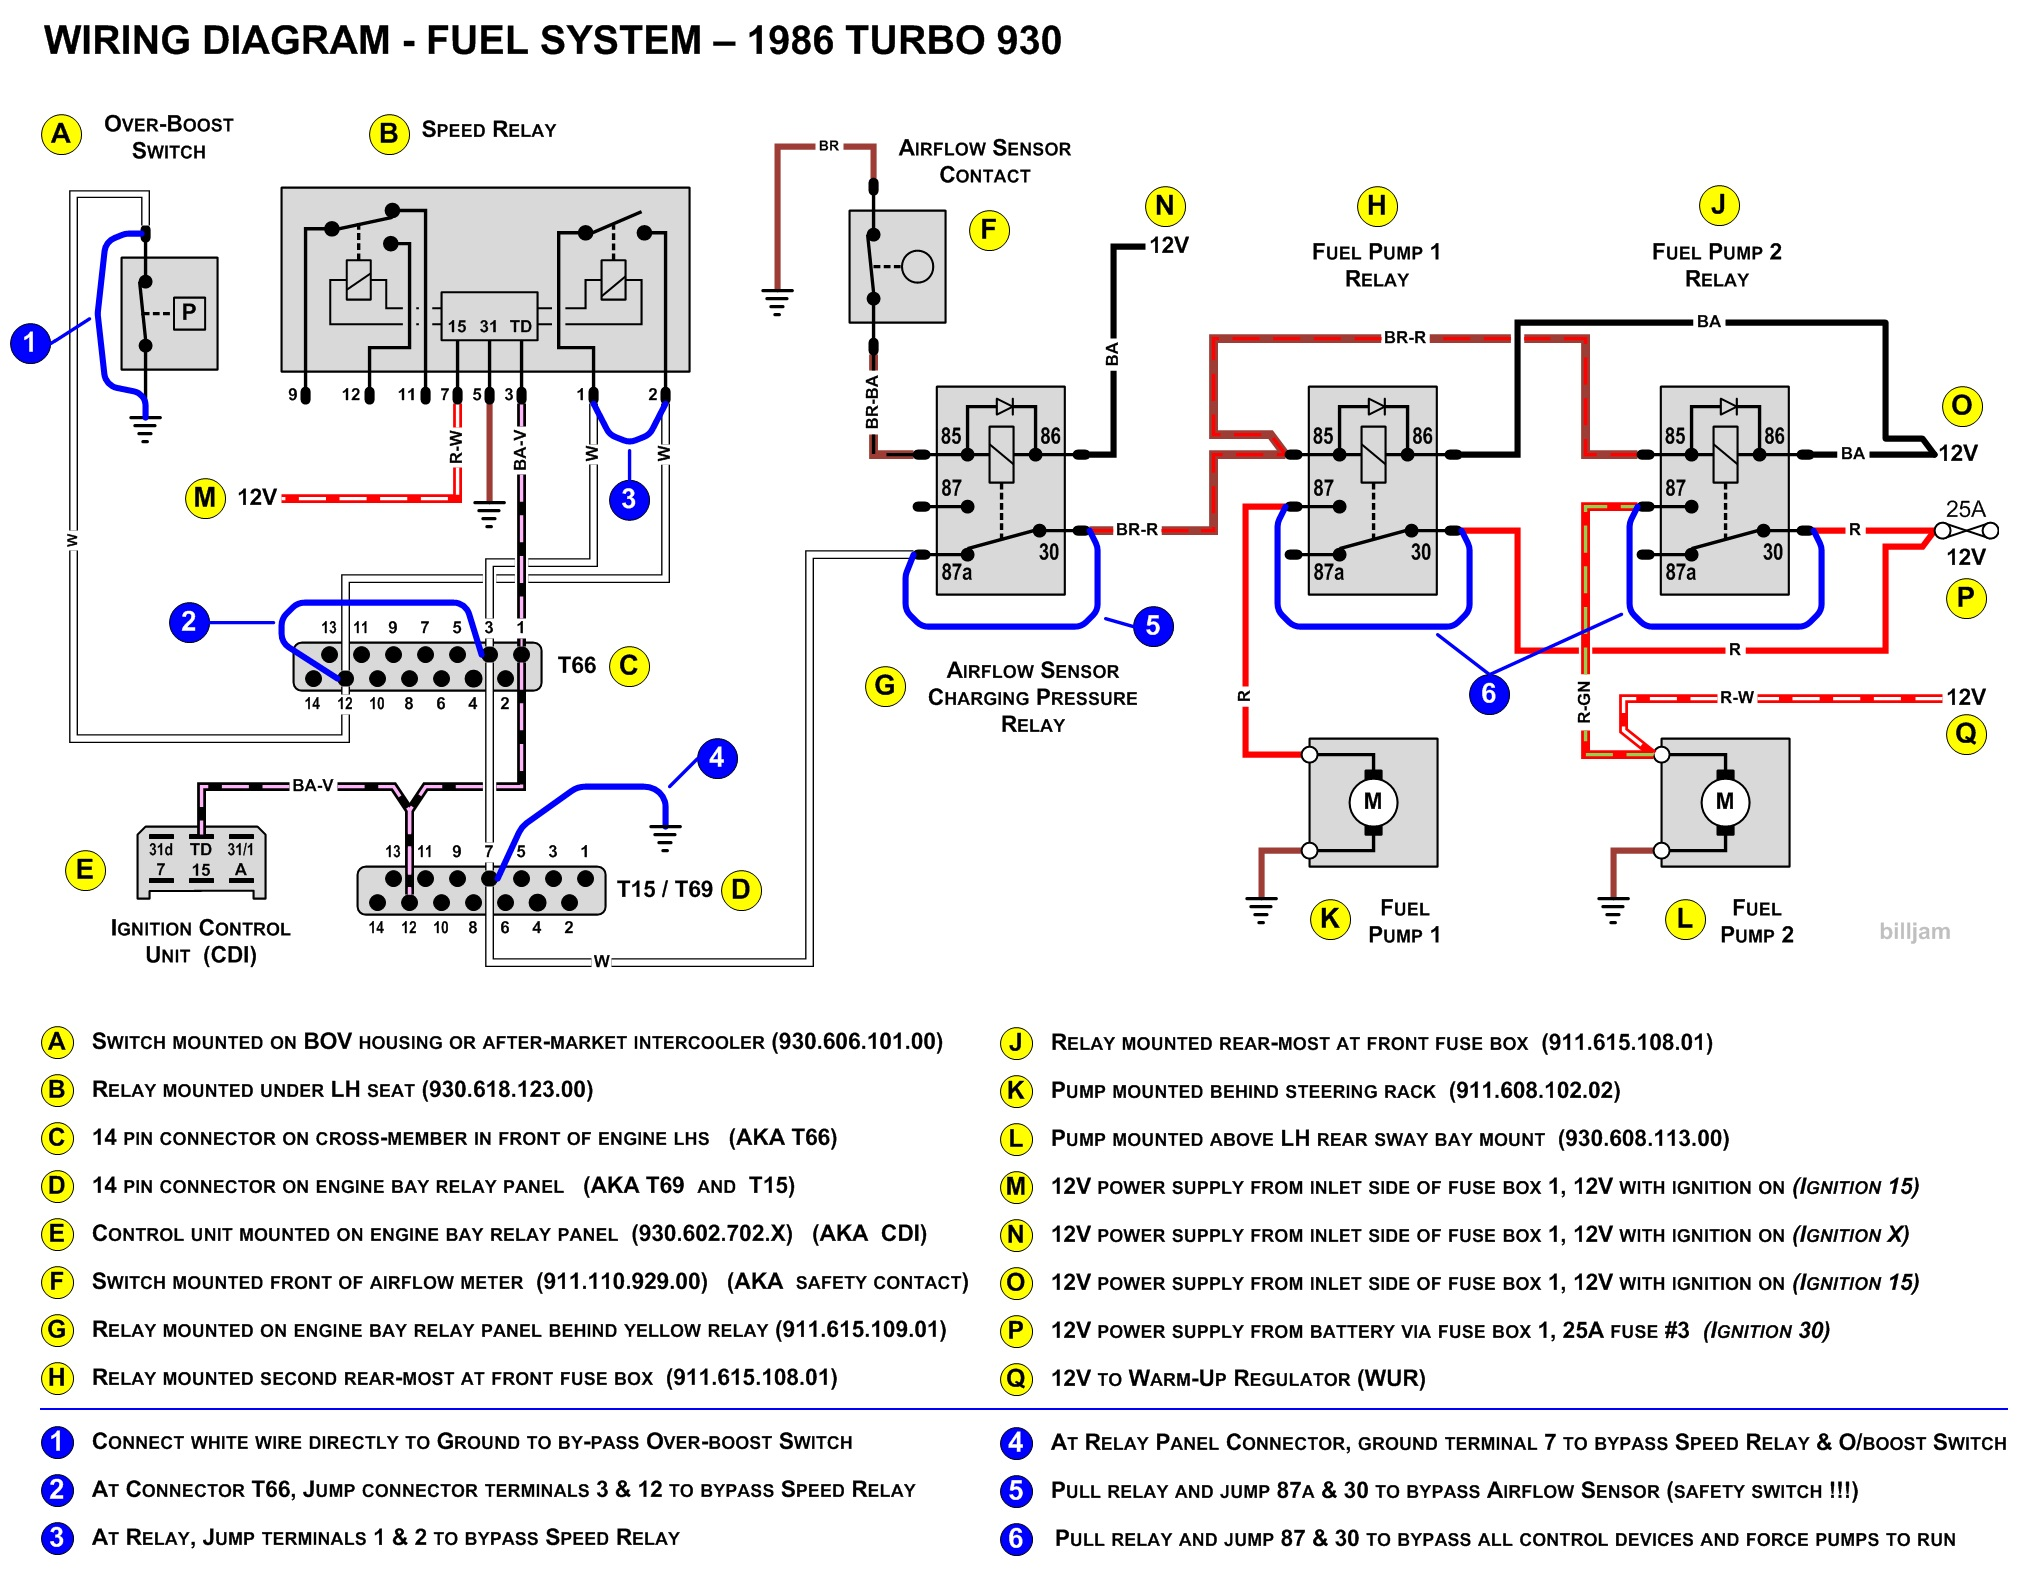 Rear Fuse Box Diagram Pelican Parts Technical Bbs Just Another Porsche 911t Wiring Made A Label For My 88 Page 3 Forums Rh Pelicanparts